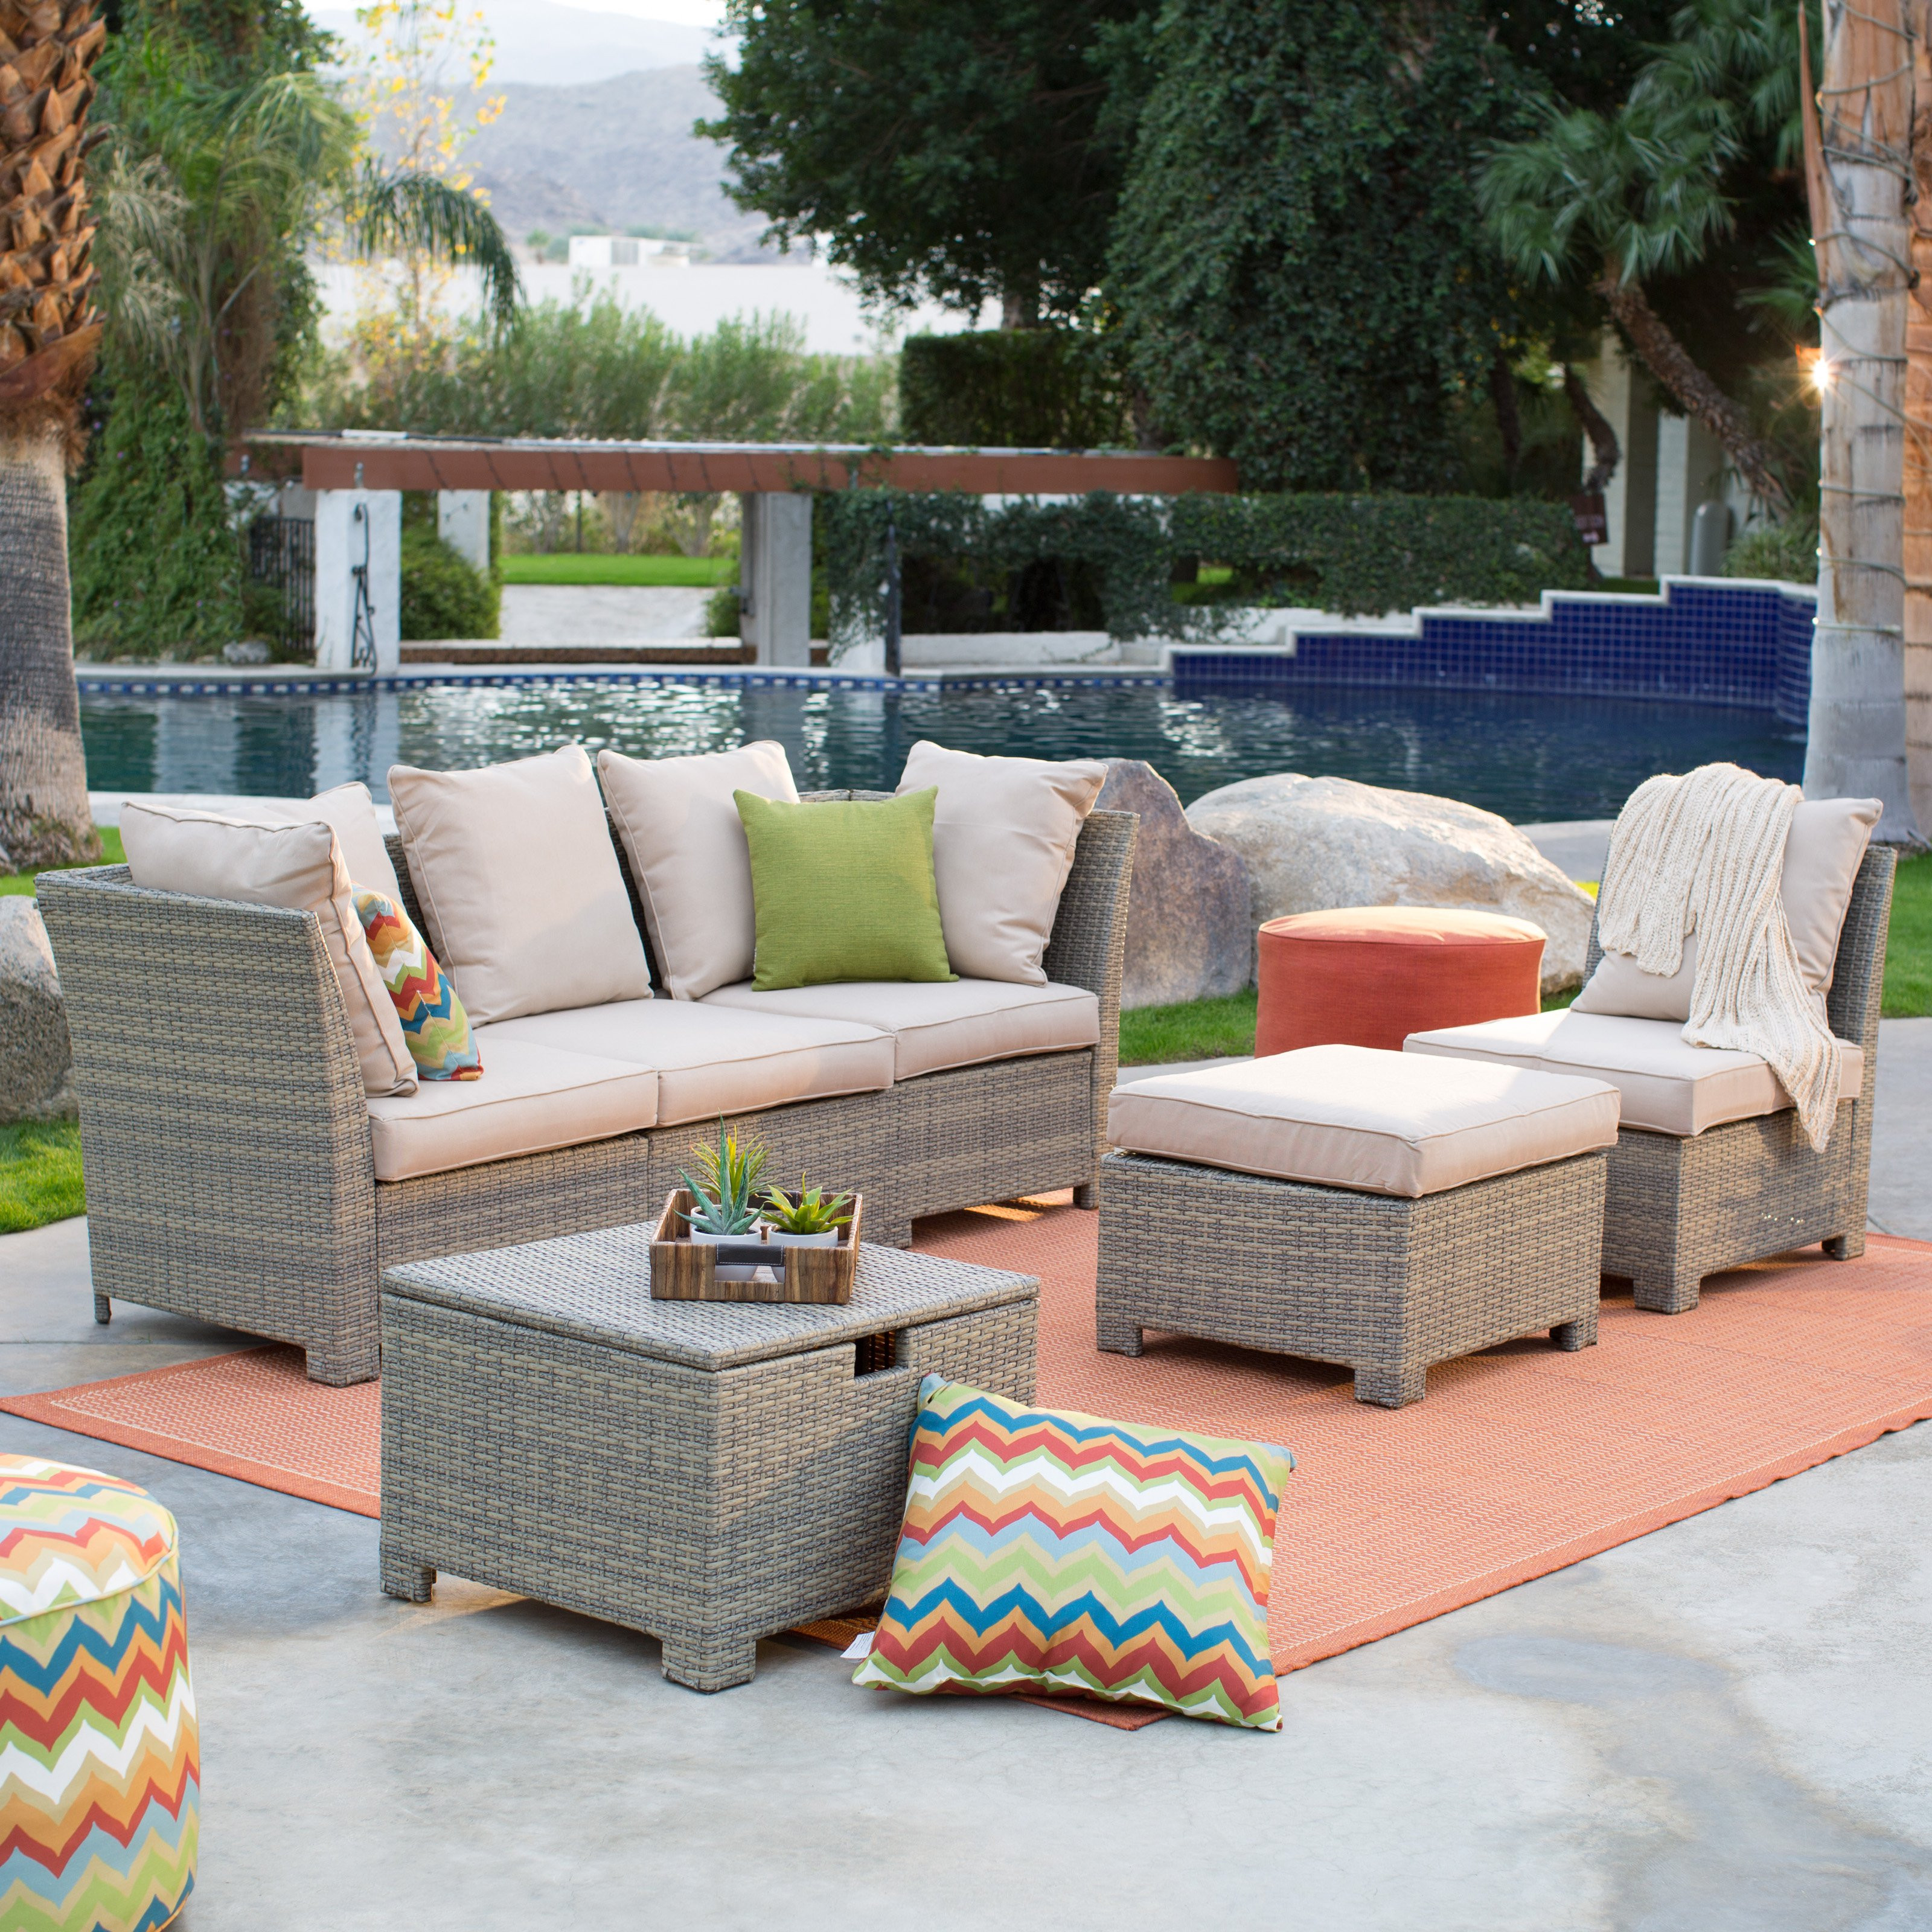 Best ideas about Patio Furniture Set . Save or Pin Coral Coast South Isle All Weather Wicker Natural Outdoor Now.